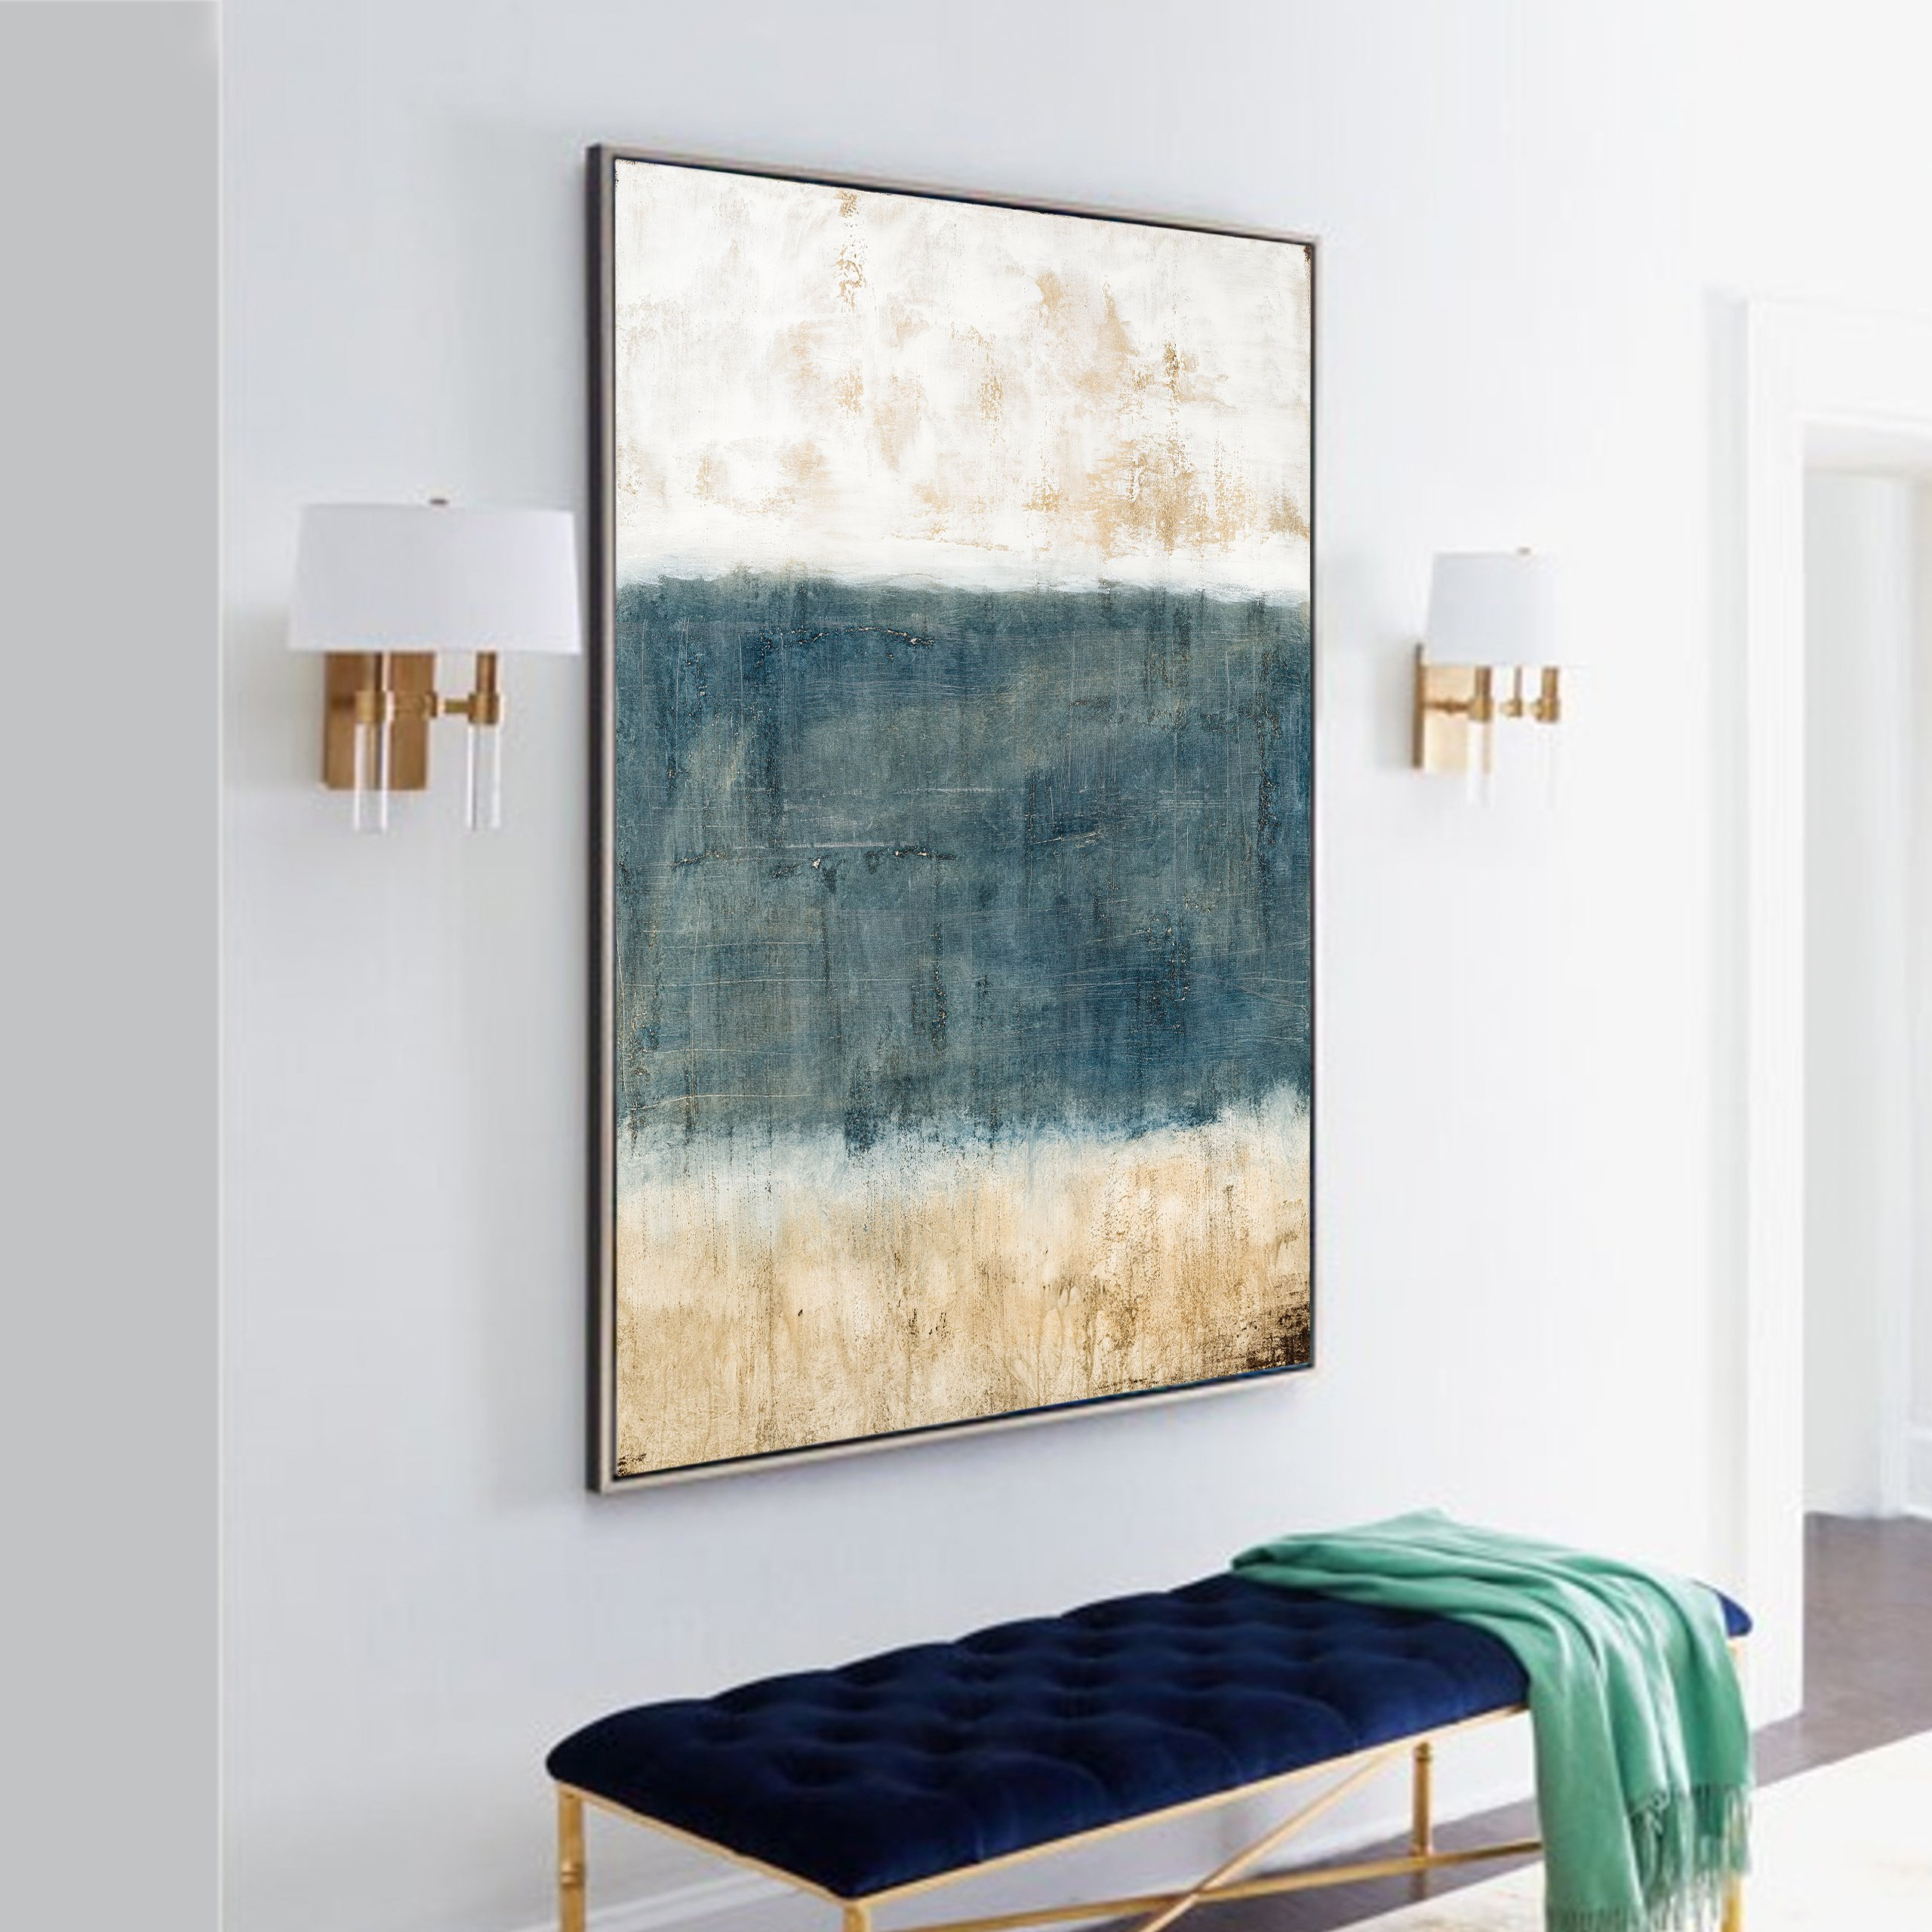 3 tones abstract art for wall decor and interior design